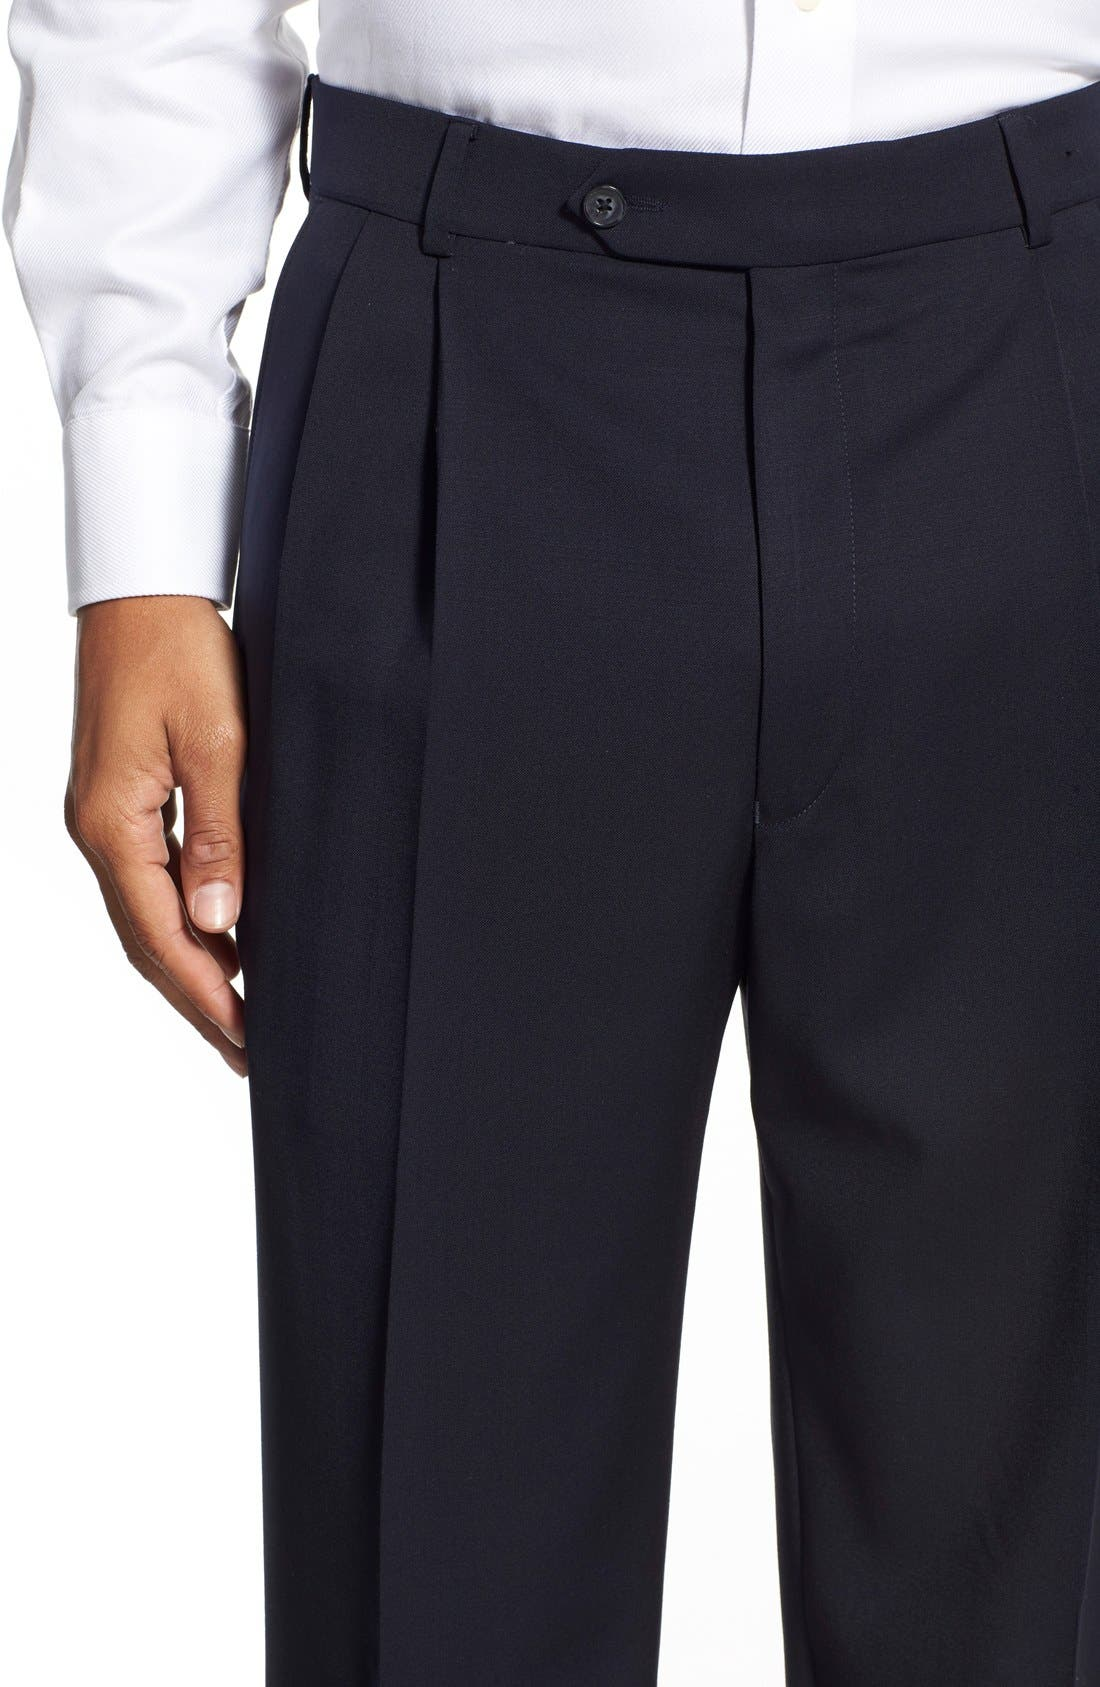 Pleated Solid Wool Trousers,                             Alternate thumbnail 51, color,